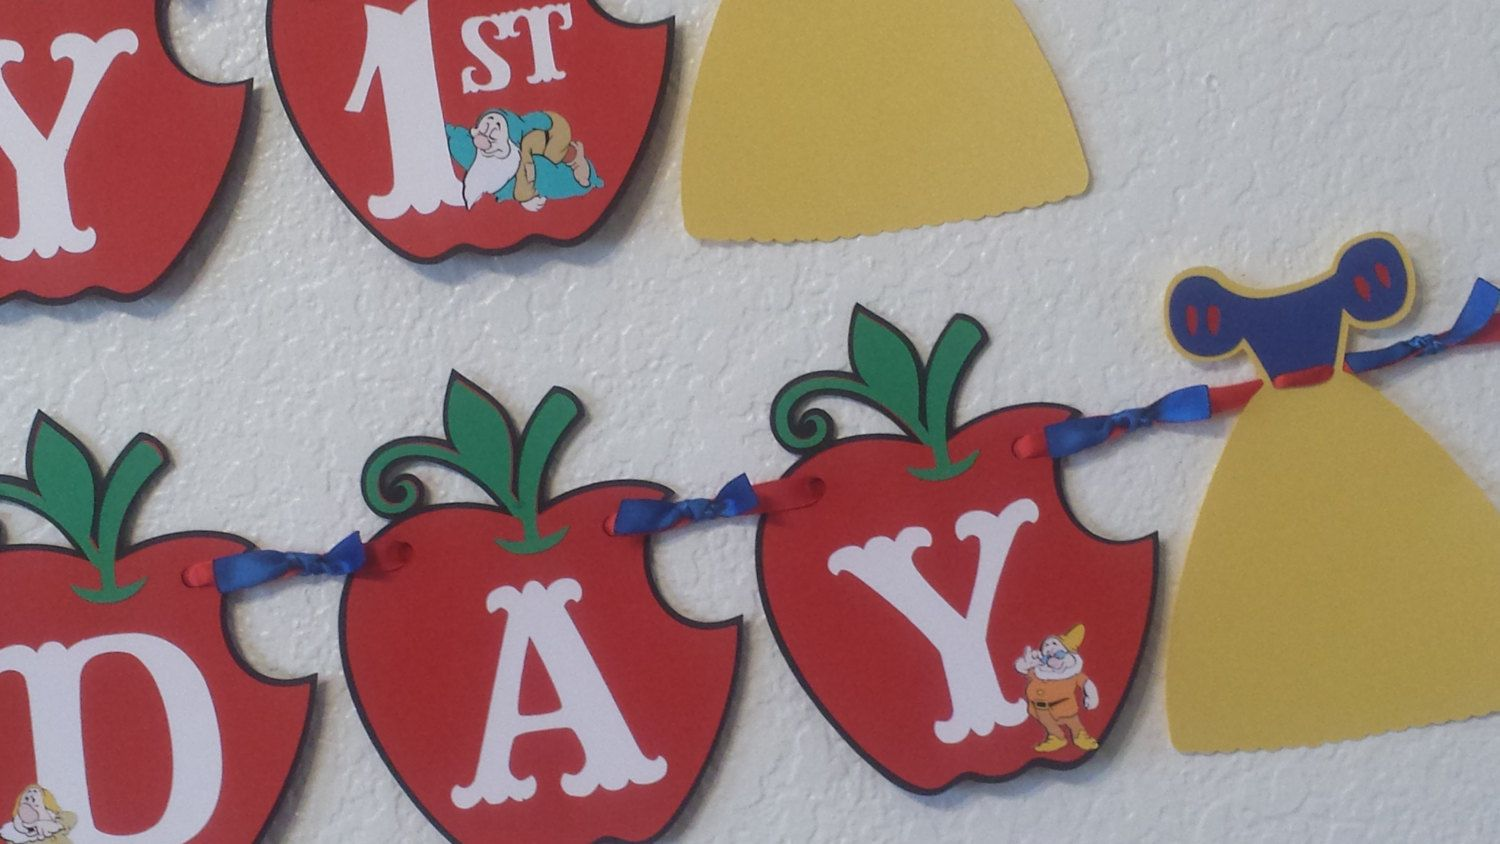 Snow white Banner, Birthday Party Banner, Snow White Party Decorations, Apples Banner by CnCpartycreations on Etsy